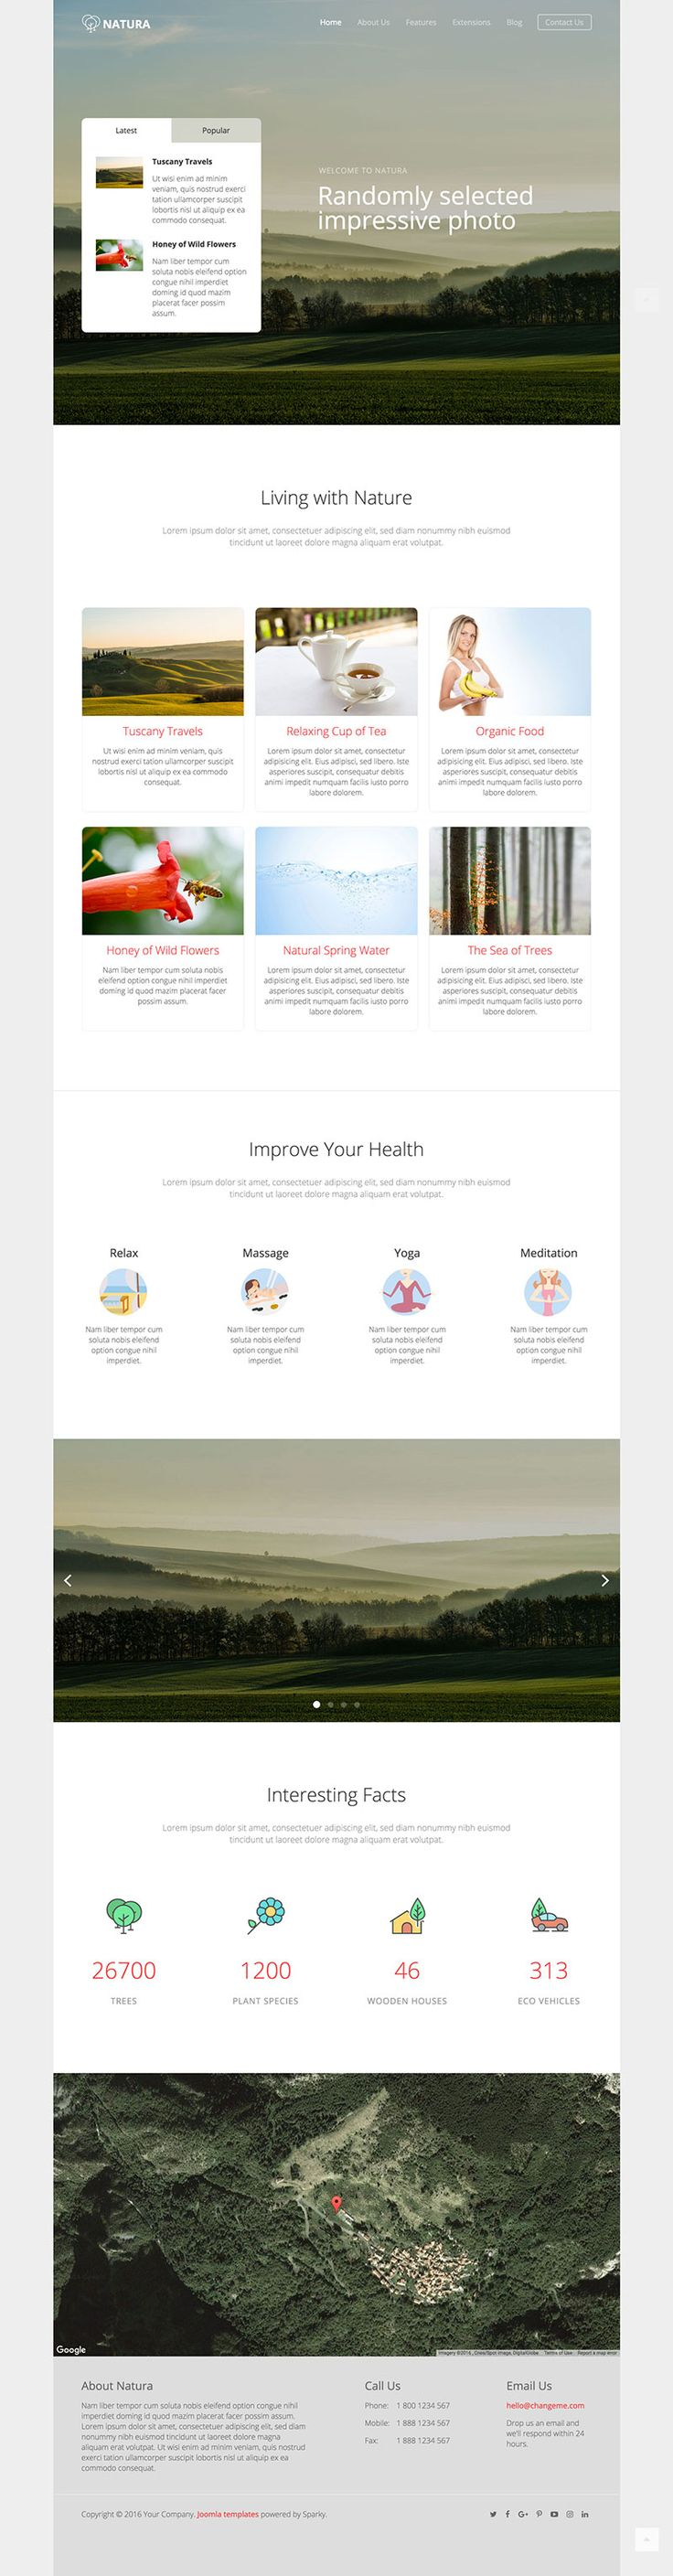 Hot Natura template for #Joomla is recognizable by its dominant big headers on home and inner pages. These headers contain randomly selected images of beautiful landscapes and nature scenes.